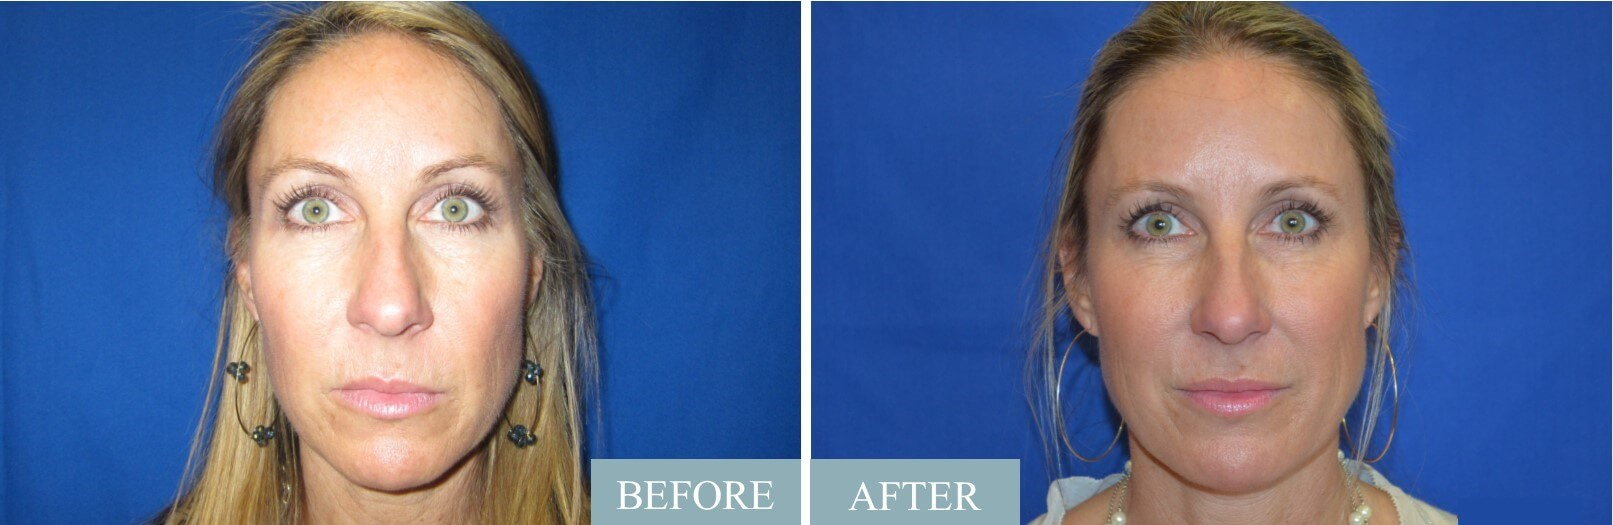 Sculptra Treatment Series Before